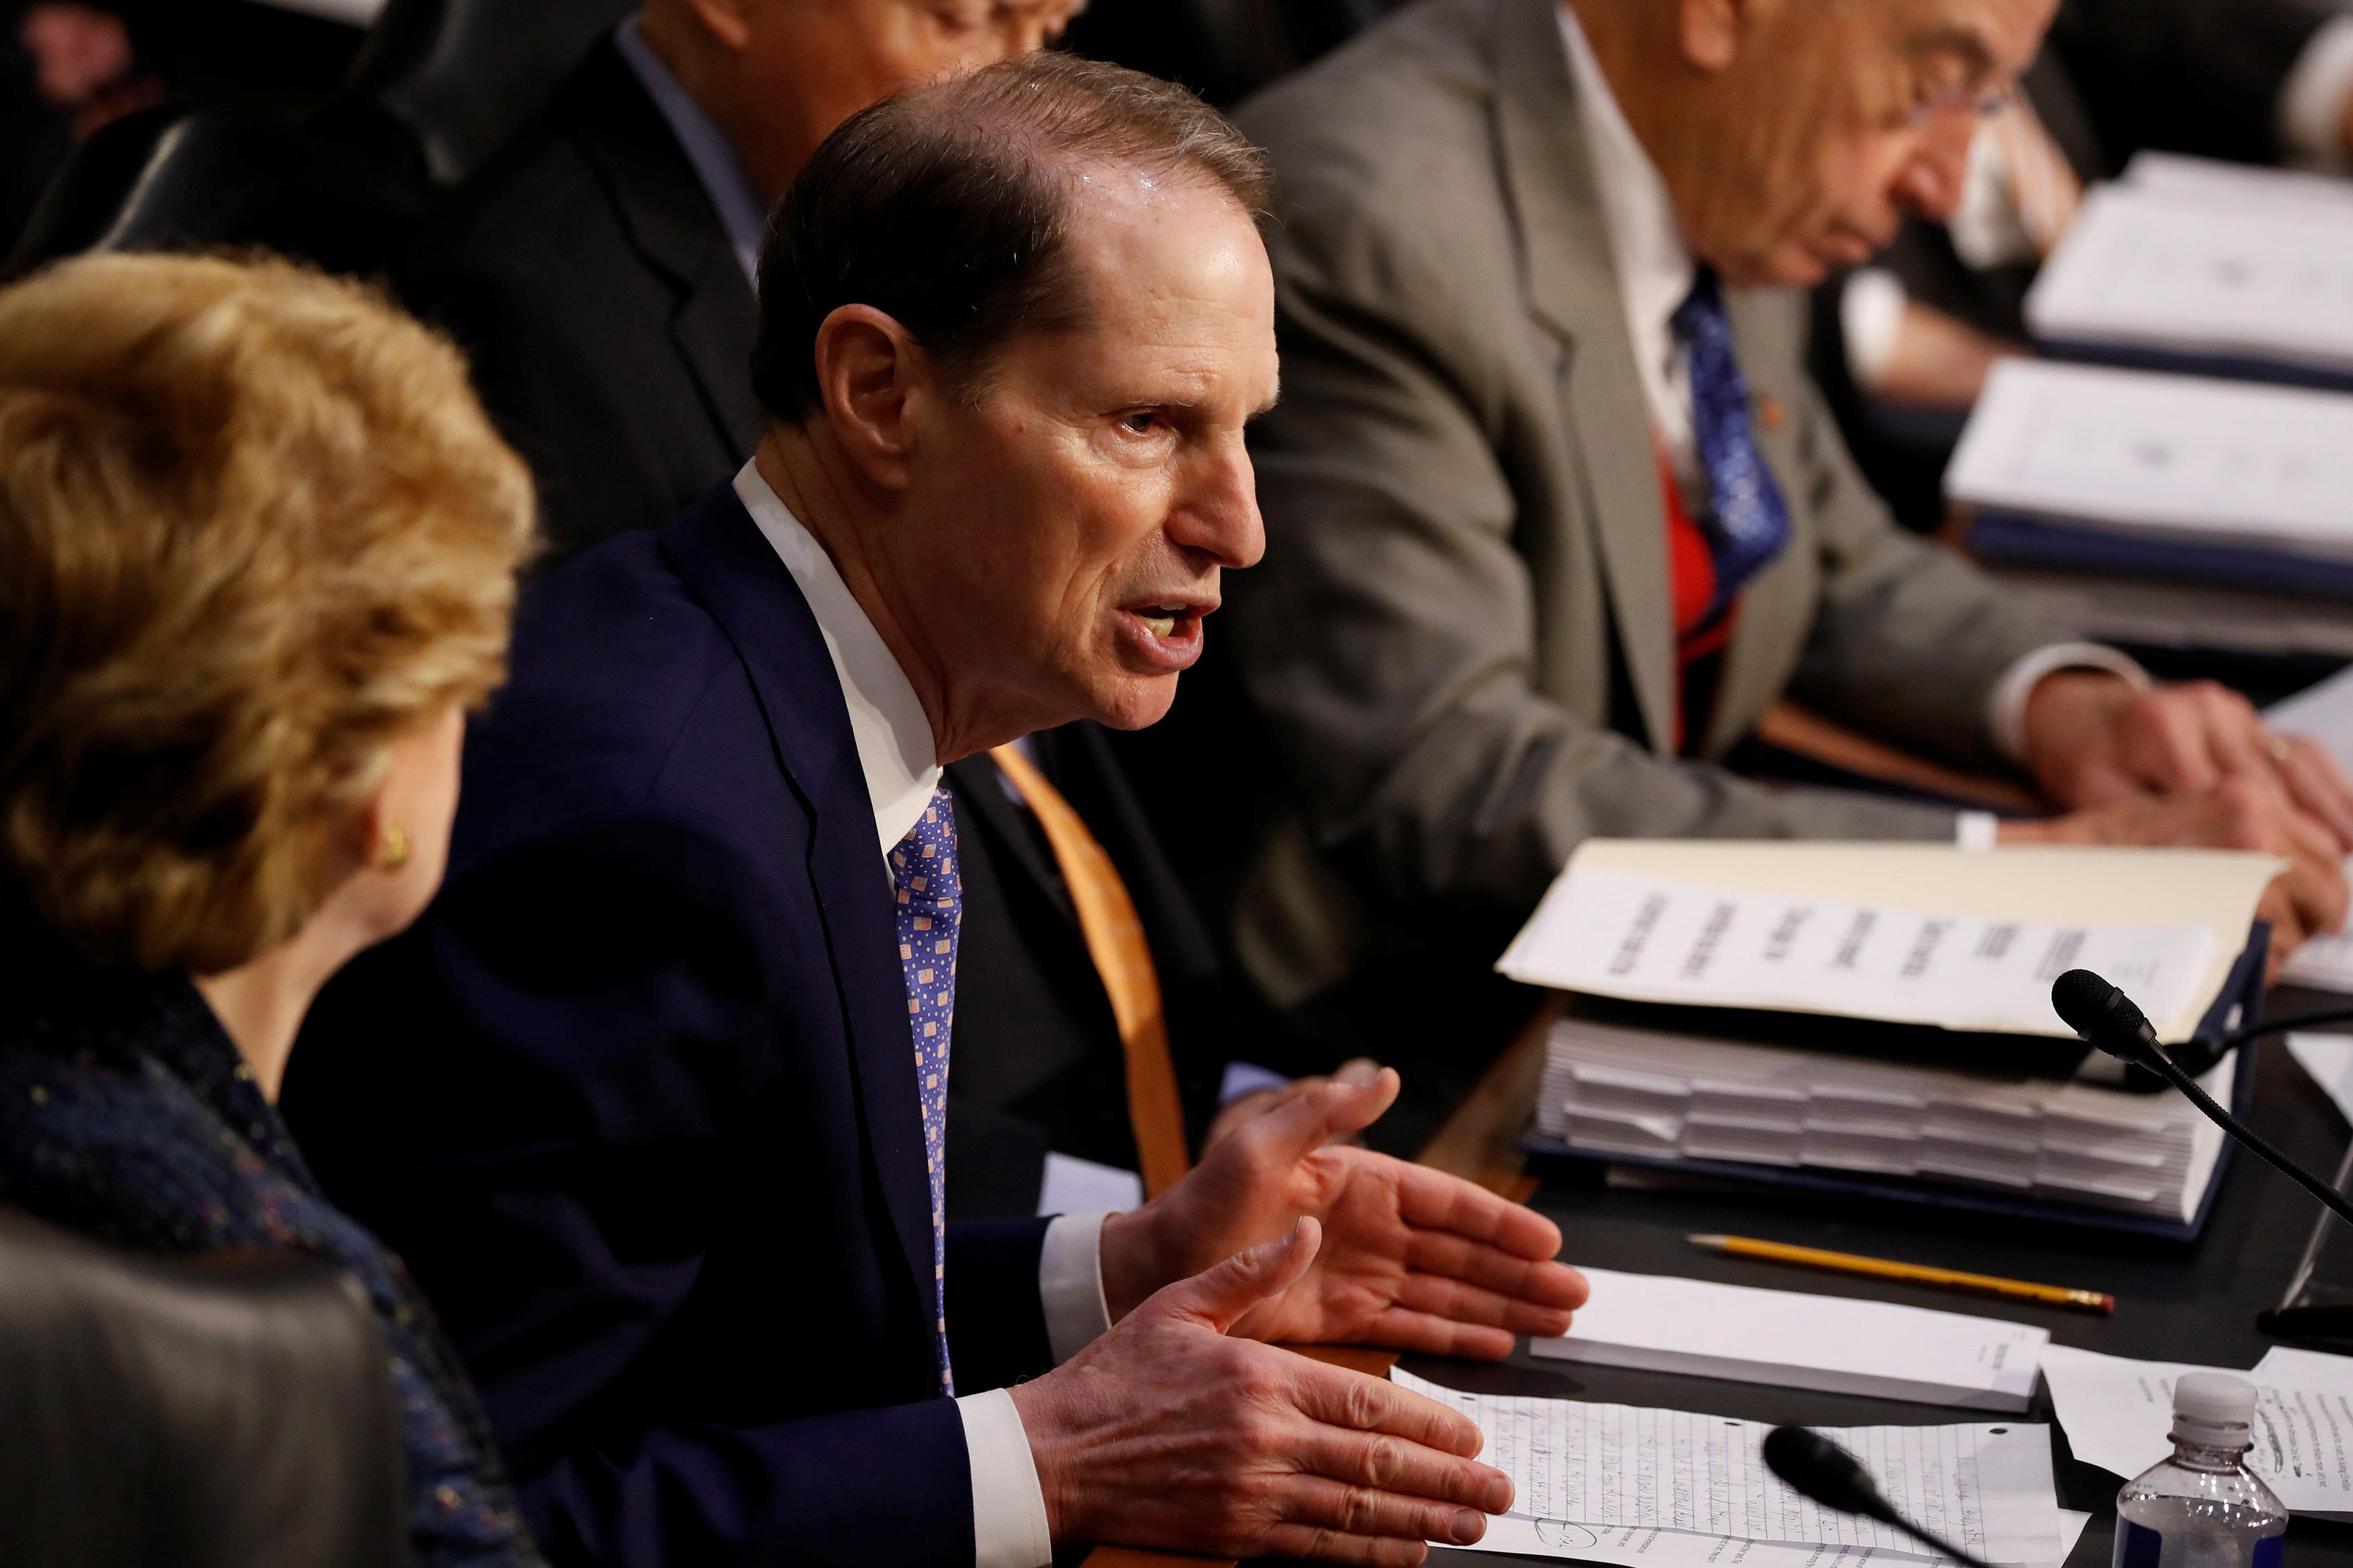 Senators want to roll back tax cuts to create jobs for long-term unemployed